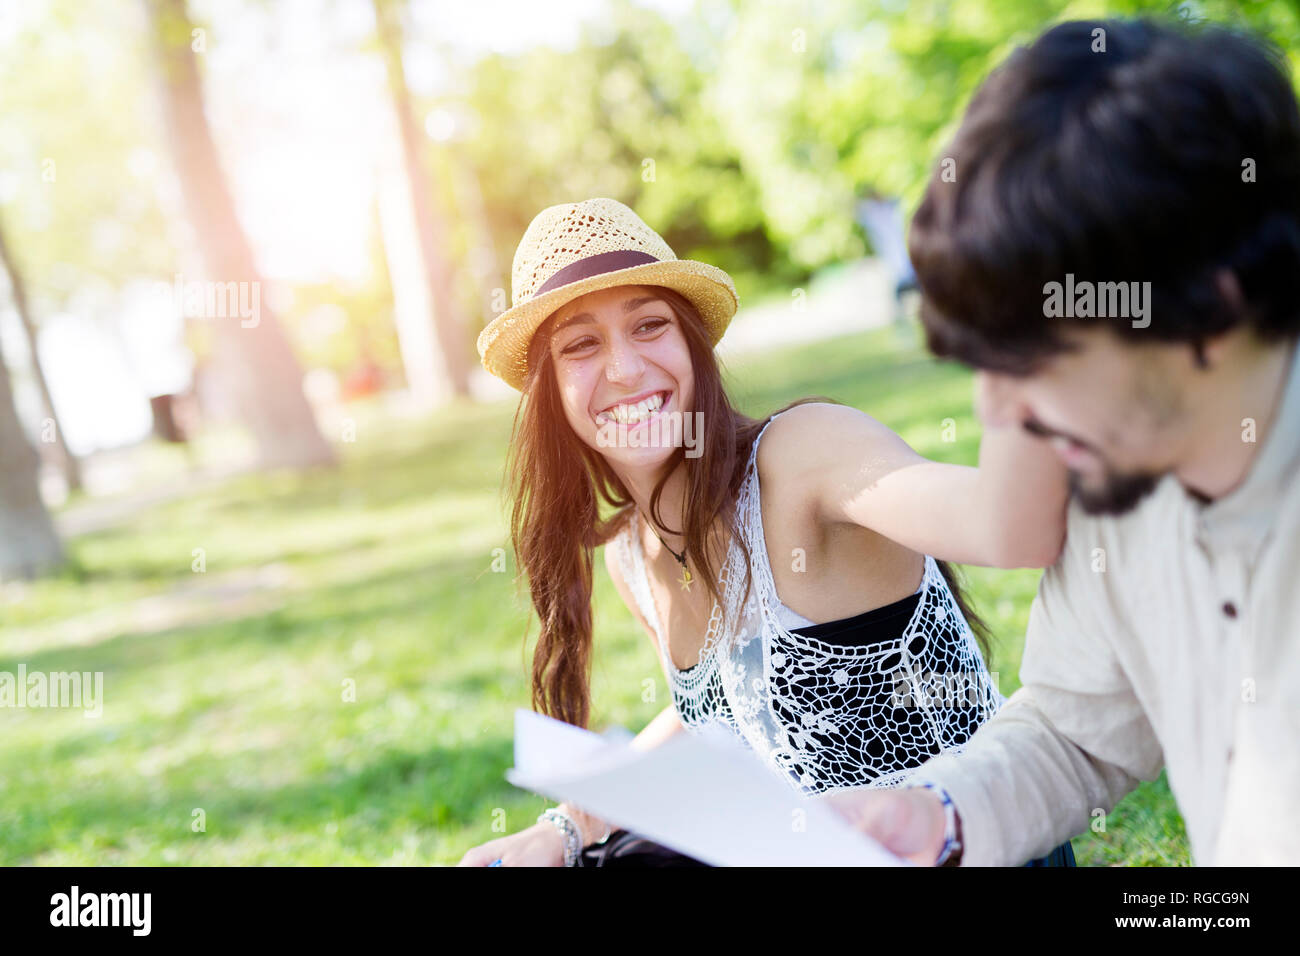 Portrait of laughing young woman  having fun in a park with her fellow student - Stock Image